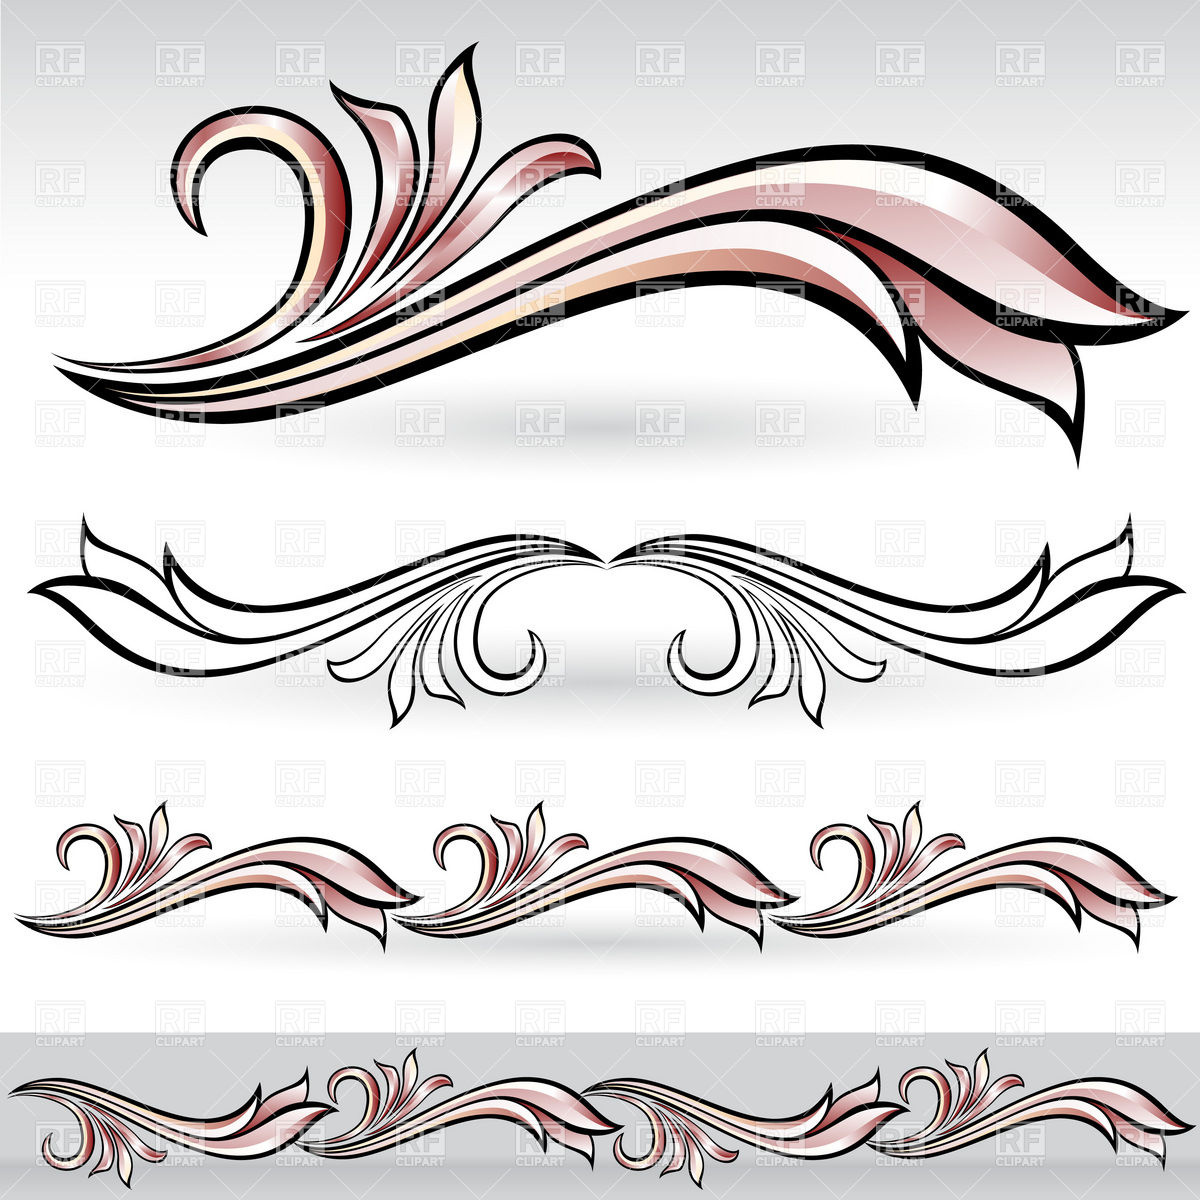 Free Decorative Border Designs